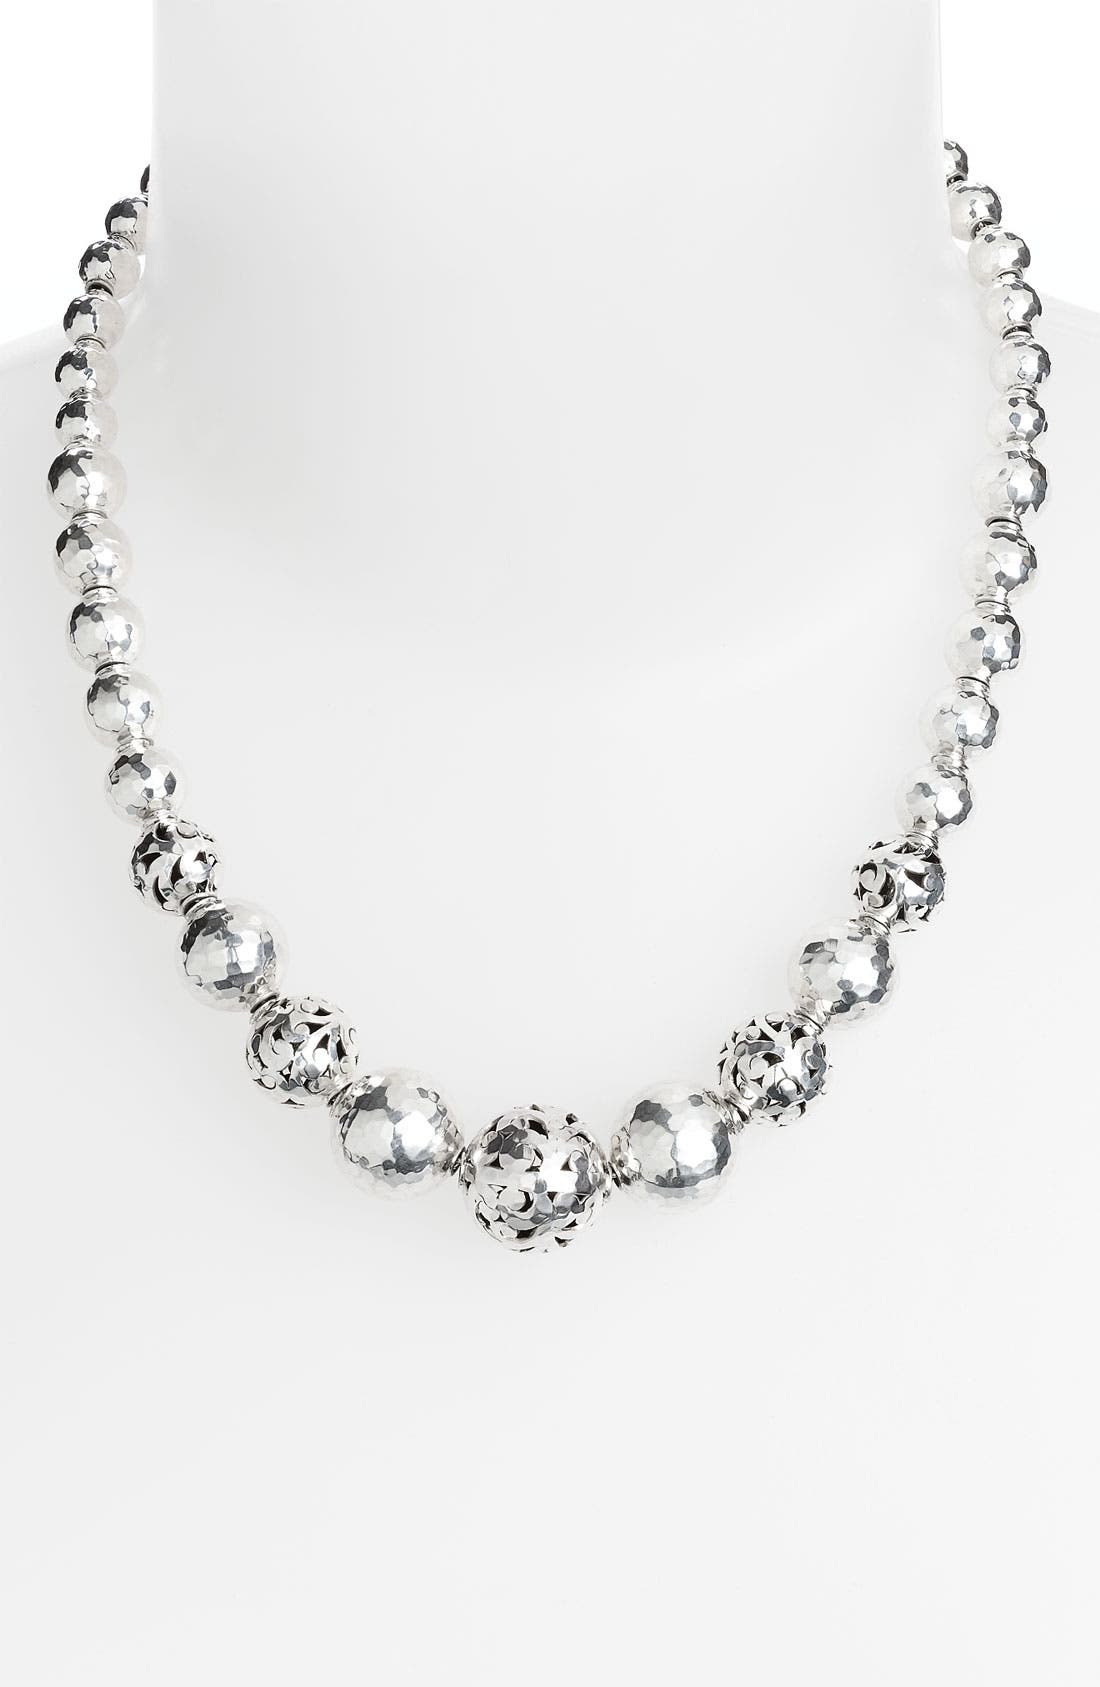 Main Image - Lois Hill 'Ball & Chain' Graduated Hammered Bead Necklace